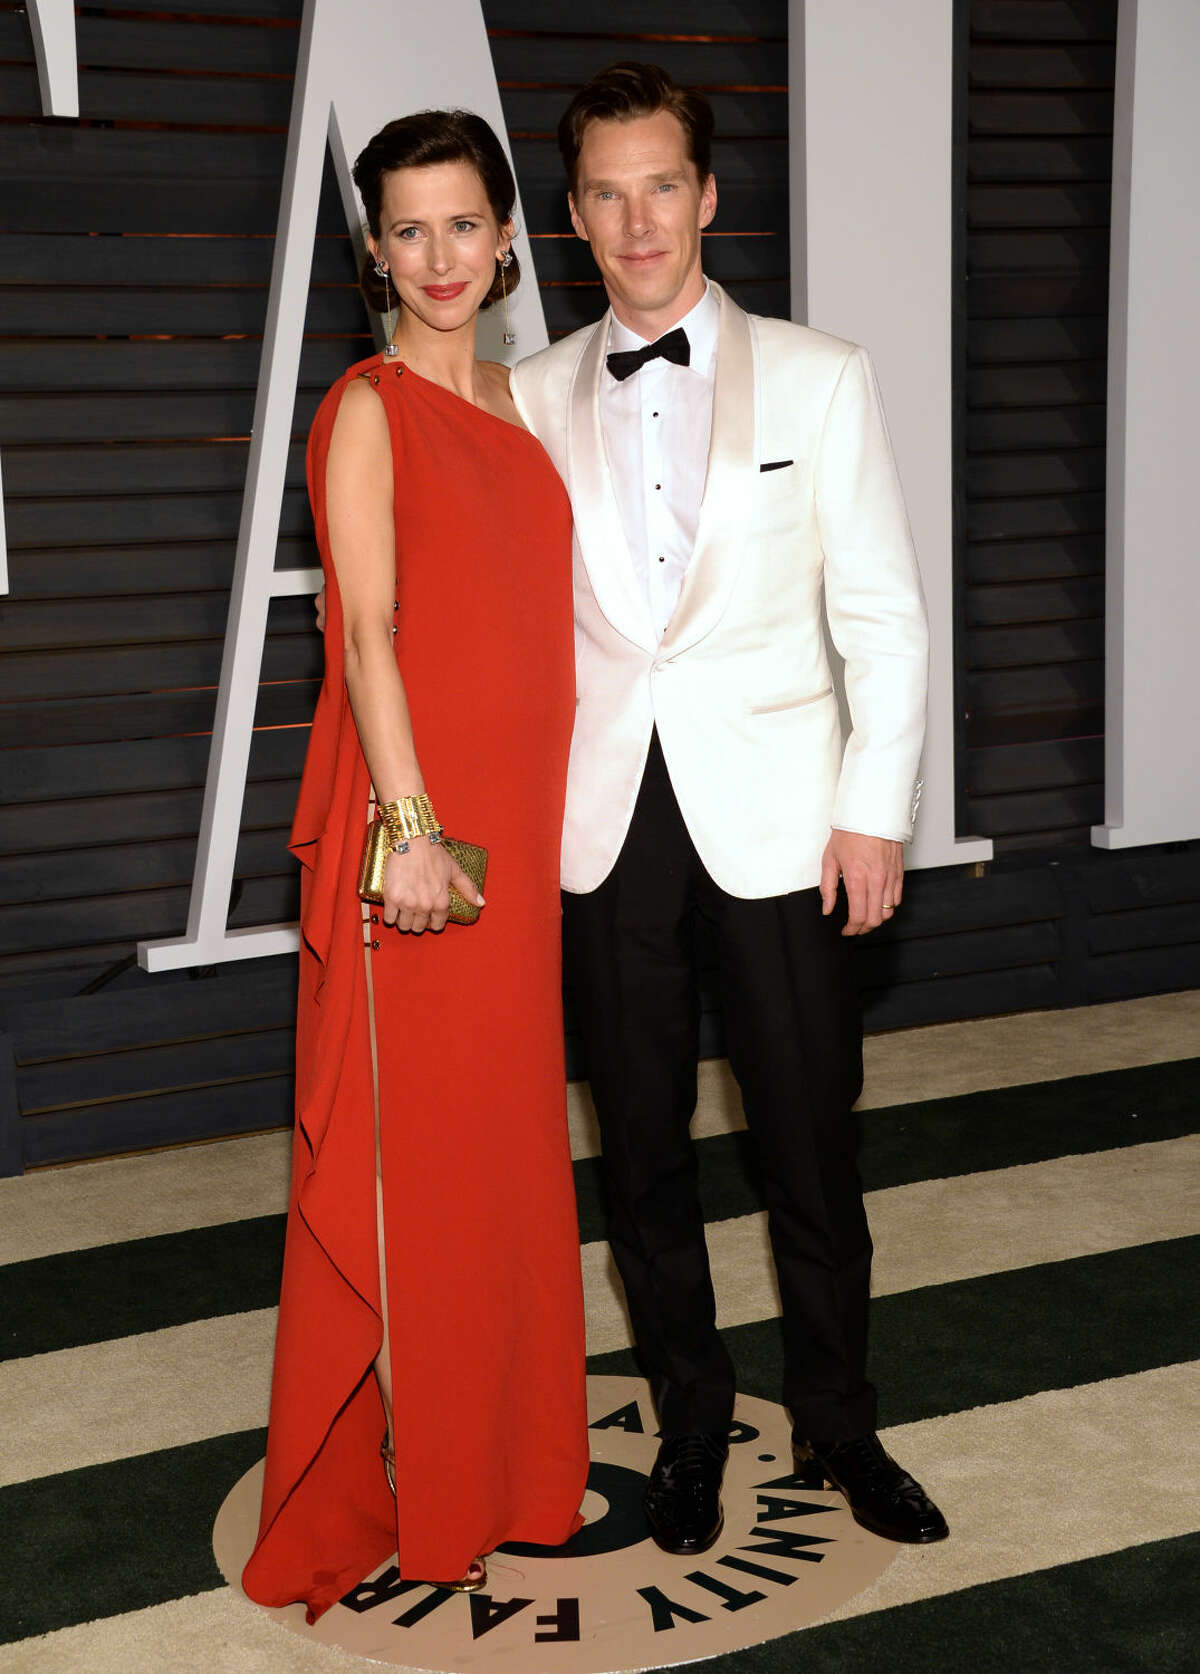 Sophie Hunter, left, and Benedict Cumberbatch arrive at the 2015 Vanity Fair Oscar Party on Sunday, Feb. 22, 2015, in Beverly Hills, Calif. (Photo by Evan Agostini/Invision/AP)